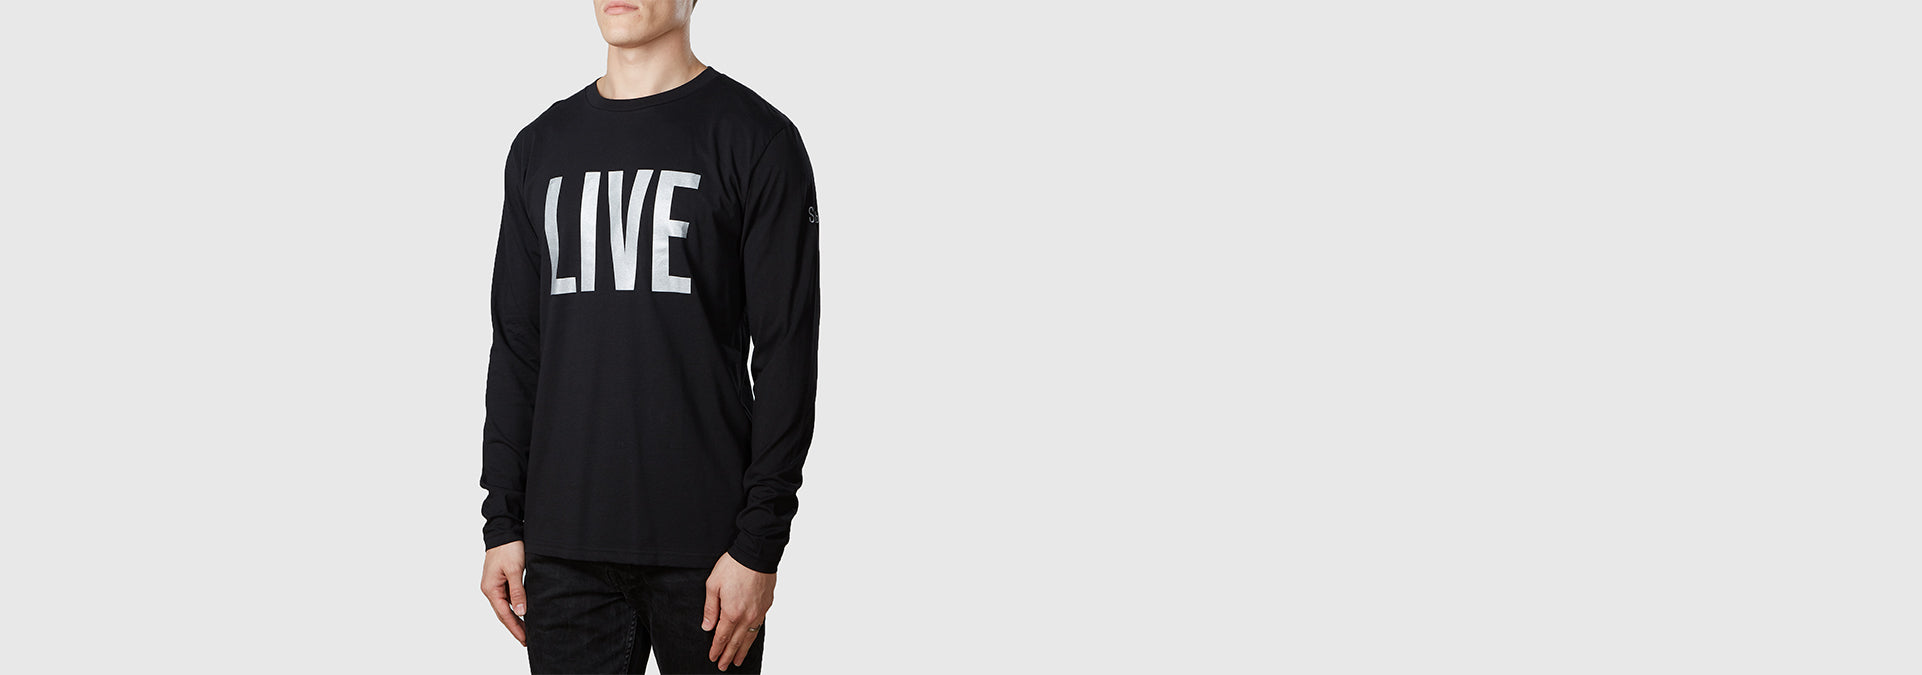 Live Organic Cotton L/S T-Shirt Black